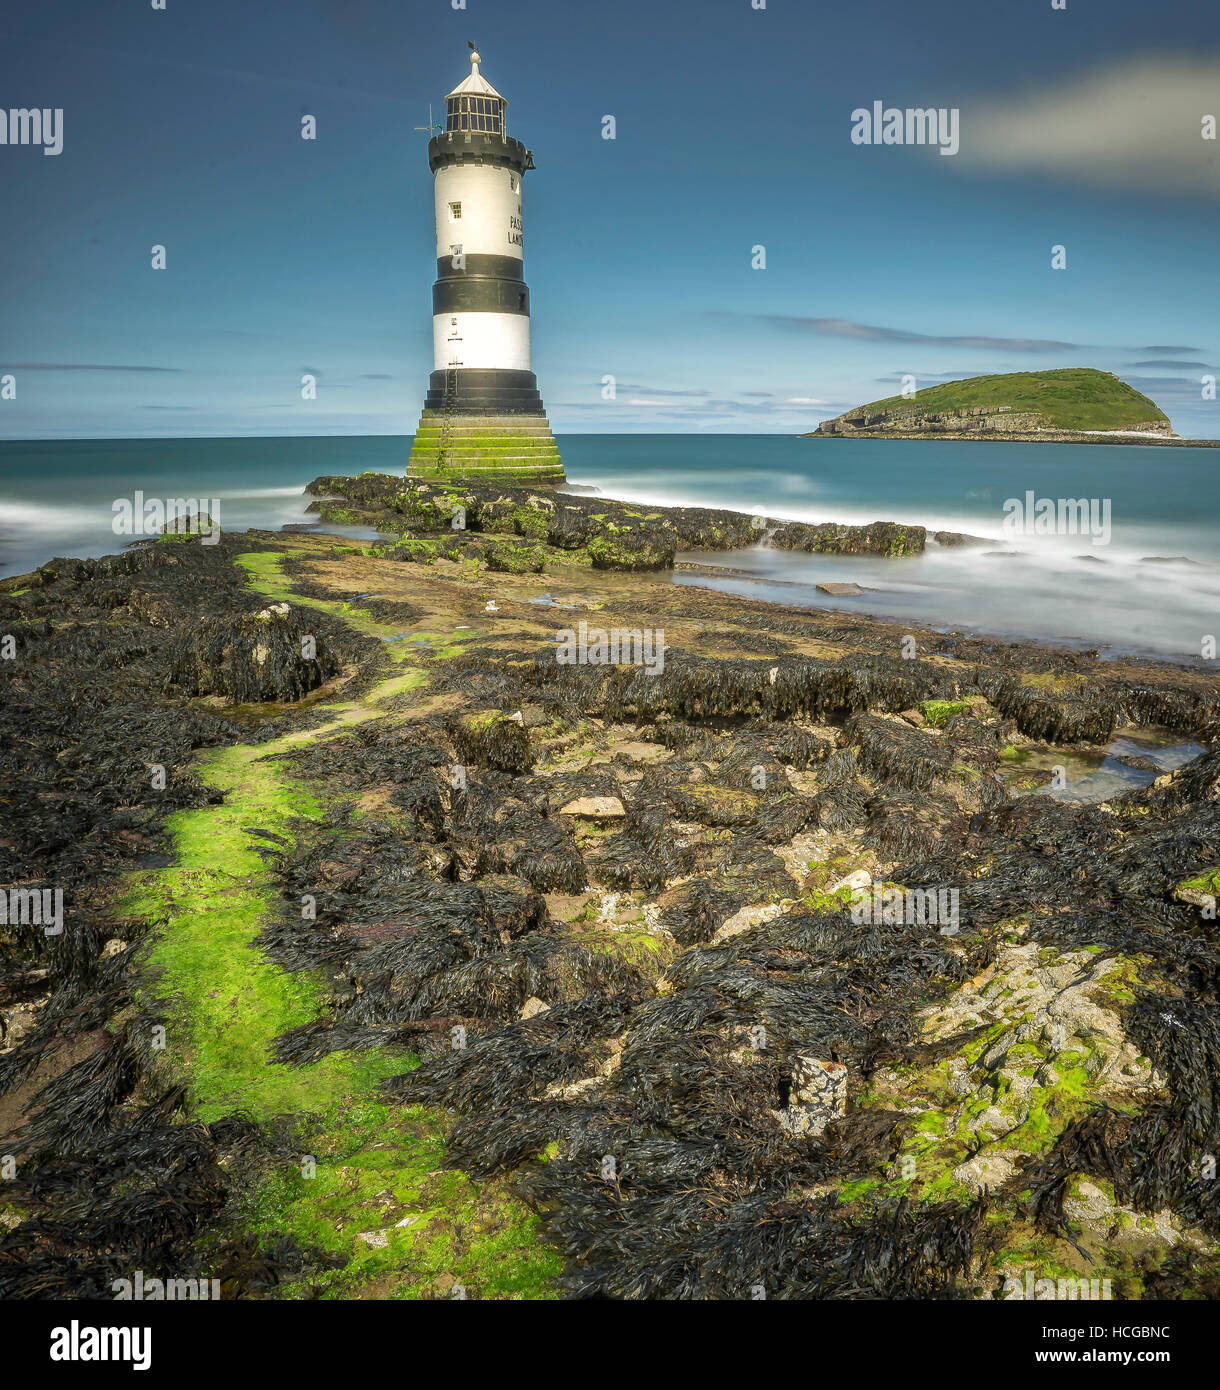 Penmon, Isle of Anglesey Stock Photo